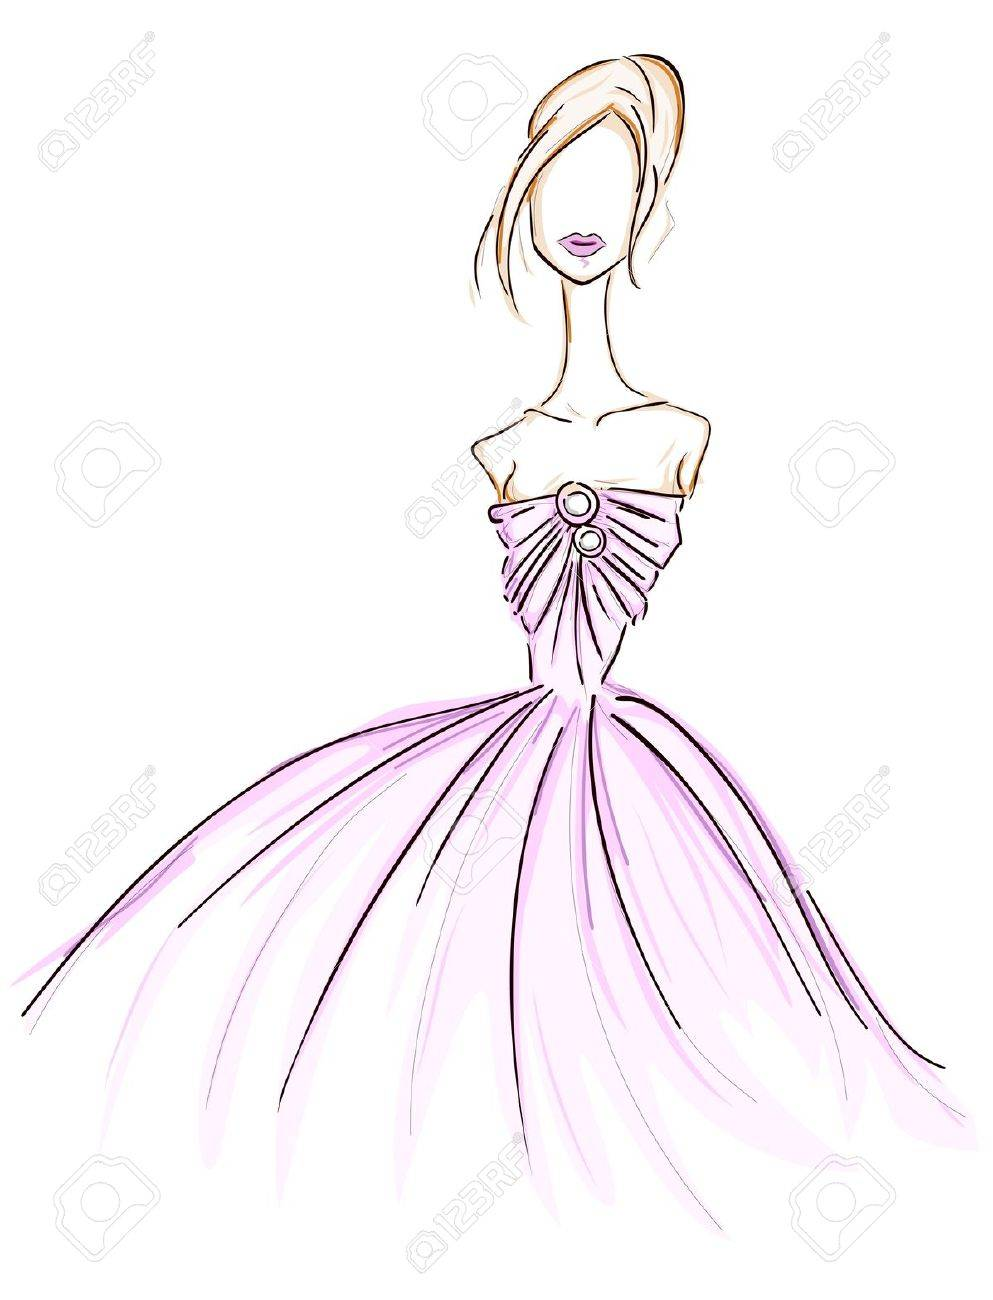 993x1300 Girl In Gown Sketch Stock Photo, Picture And Royalty Free Image